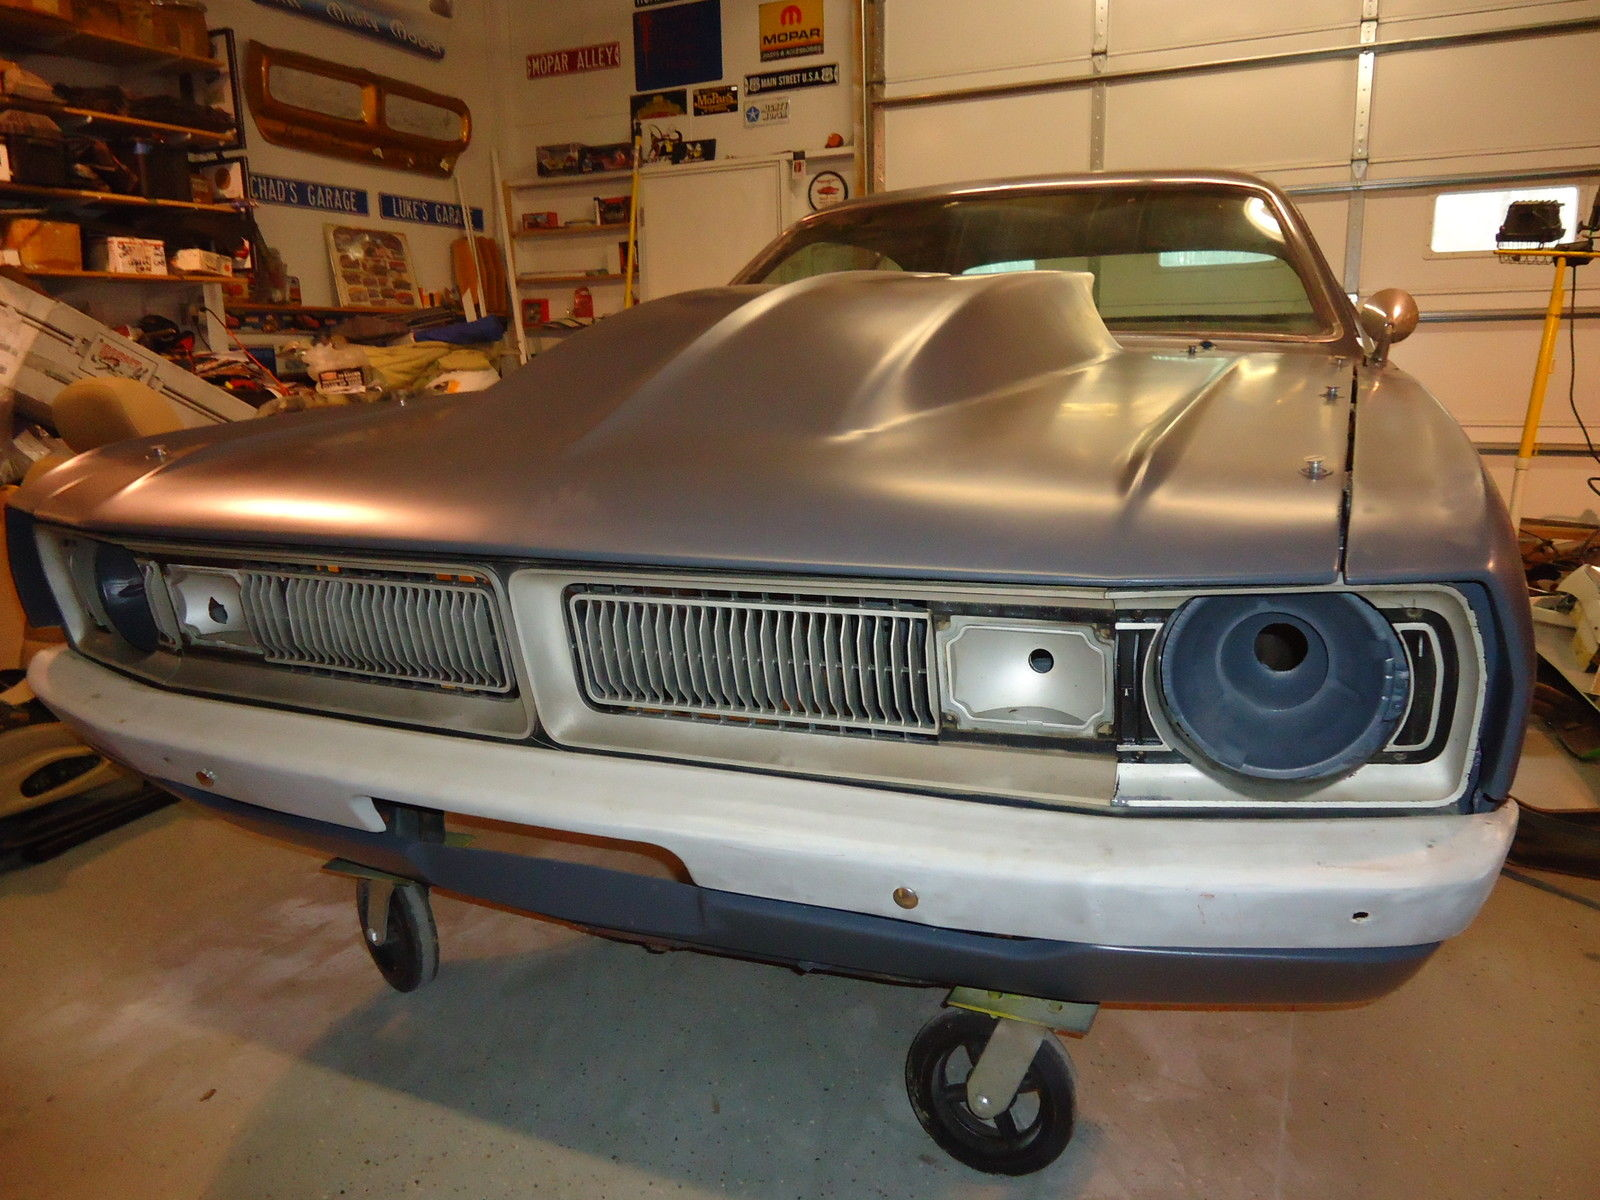 1971 DODGE DEMON DART NICE PROJECT CAR FOR WINTER, MAKE IT A SUPER STOCK HEMI for sale in ...